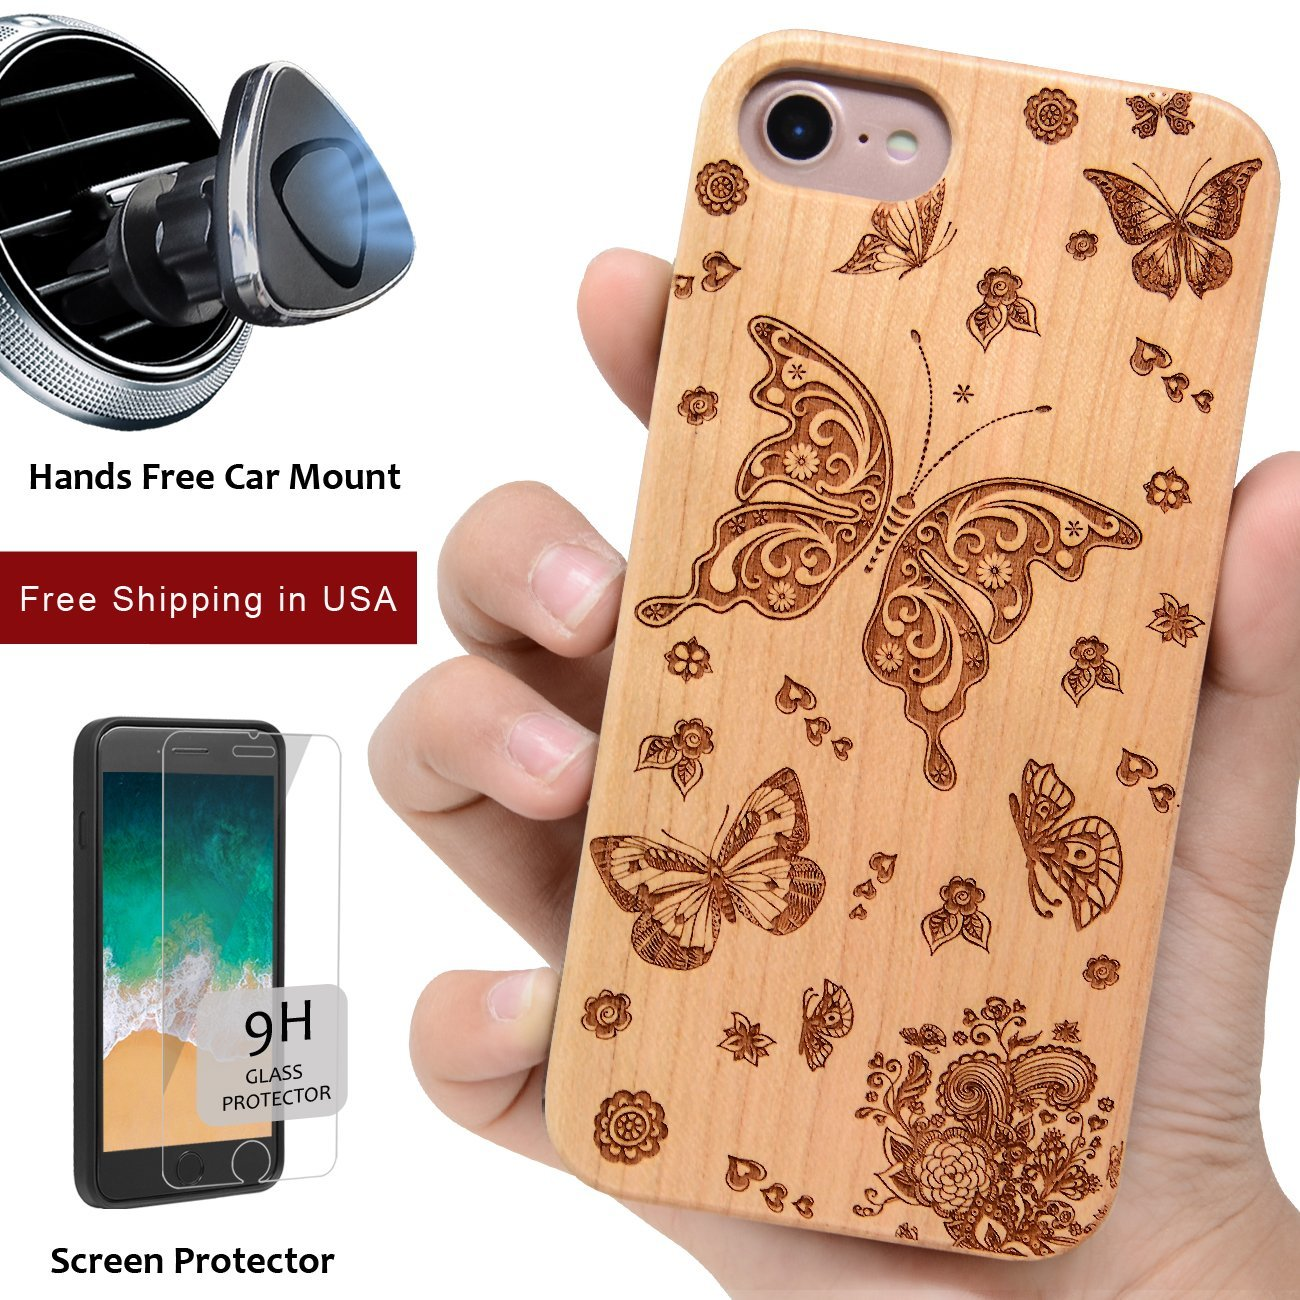 Butterfly Wood iPhone Case Includes Screen Protector or Magnetic Car Mount - iProductsUS